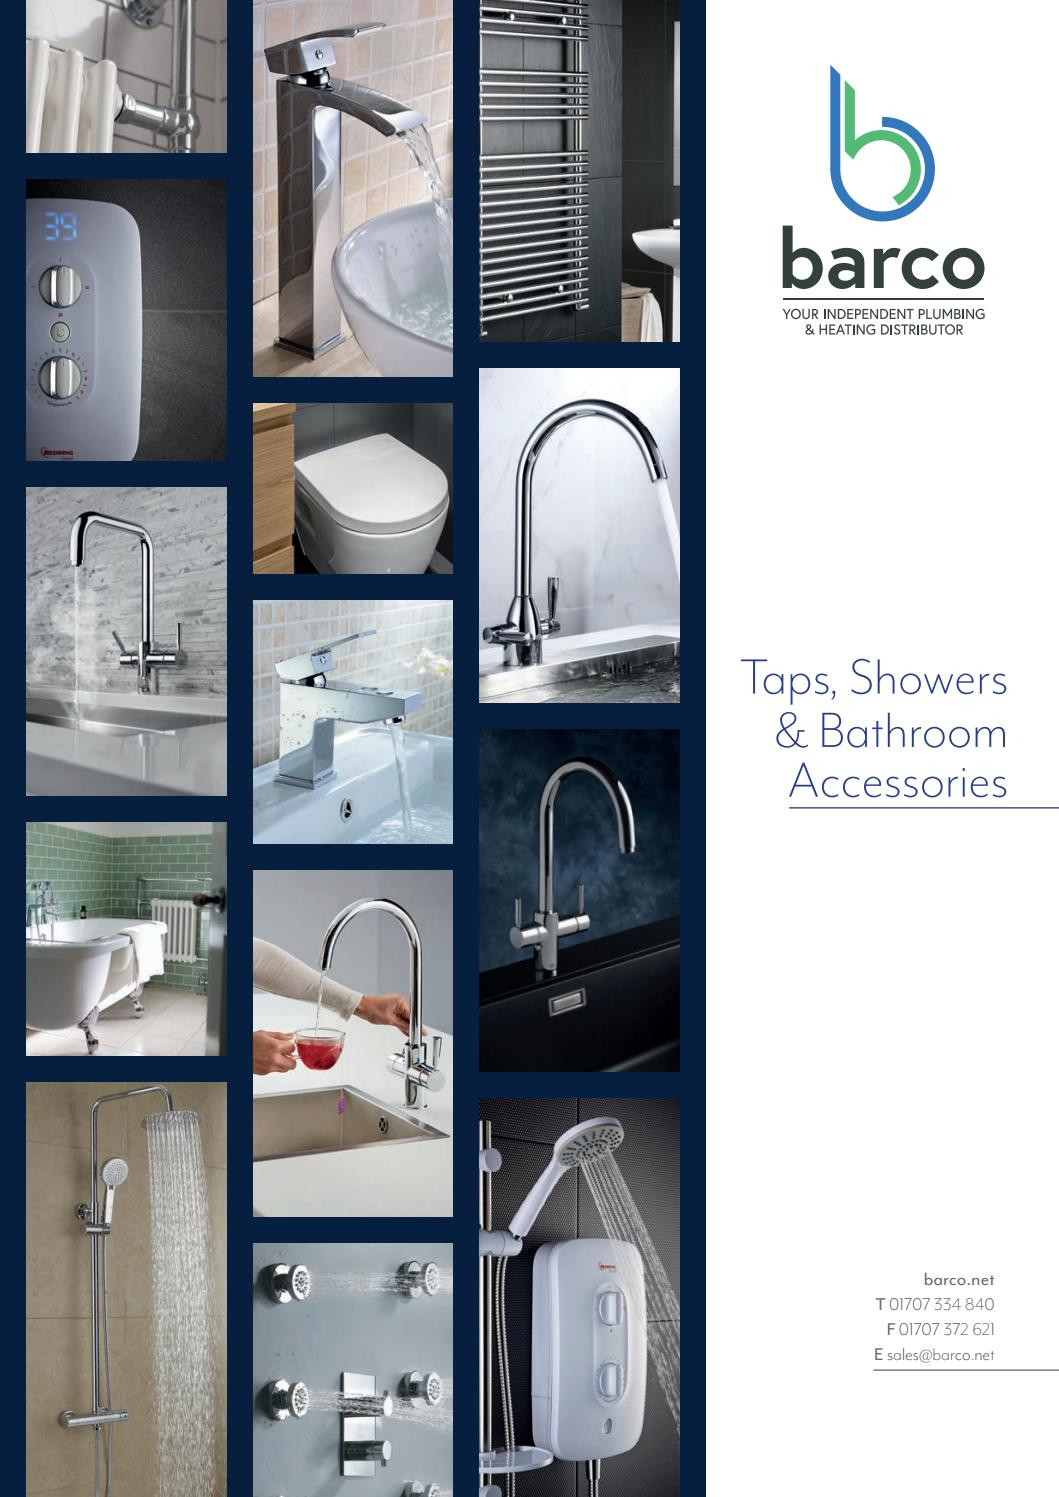 Barco Taps, Showers & Bathroom Accessories Brochure by barco-sales ...